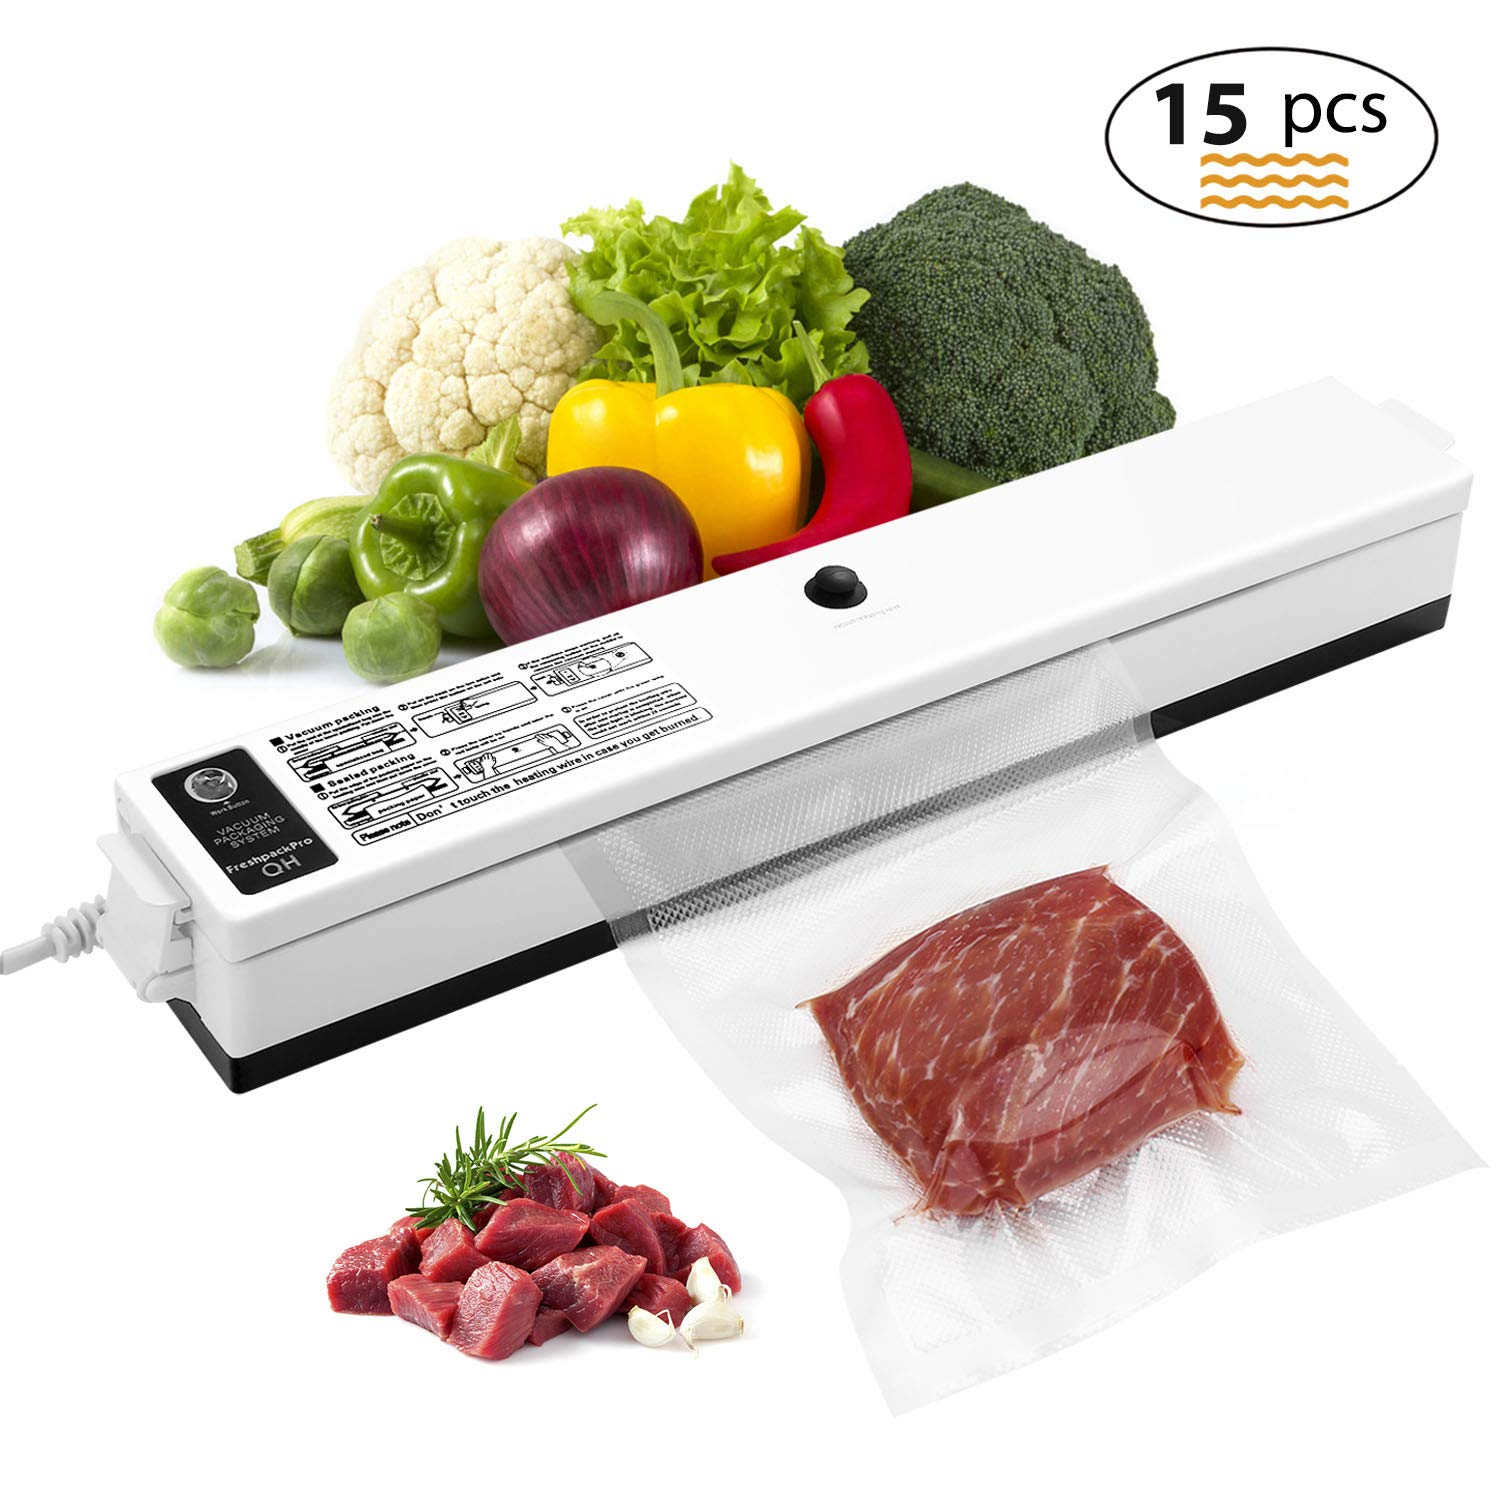 Vacuum Sealer, Etrigger Automatic Vacuum Sealing Machine for Both Dried and Wet Fresh Food, Suitable for Camping and Home Use with 15pcs Vacuum Sealer Bags(20 × 25cm) by Etrigger